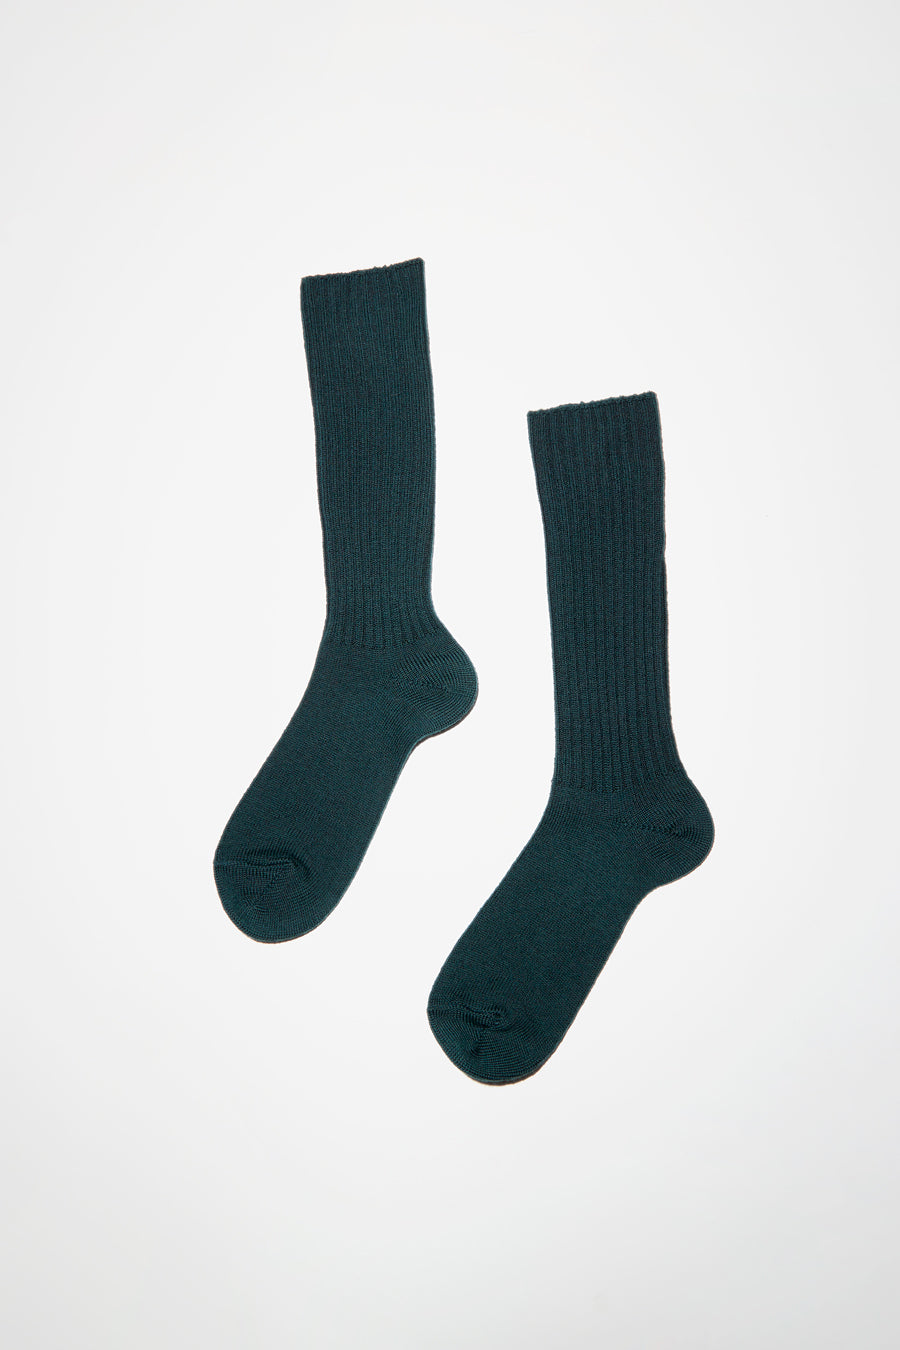 Maria La Rosa Extrafine Merino Ribbed Sock in Green